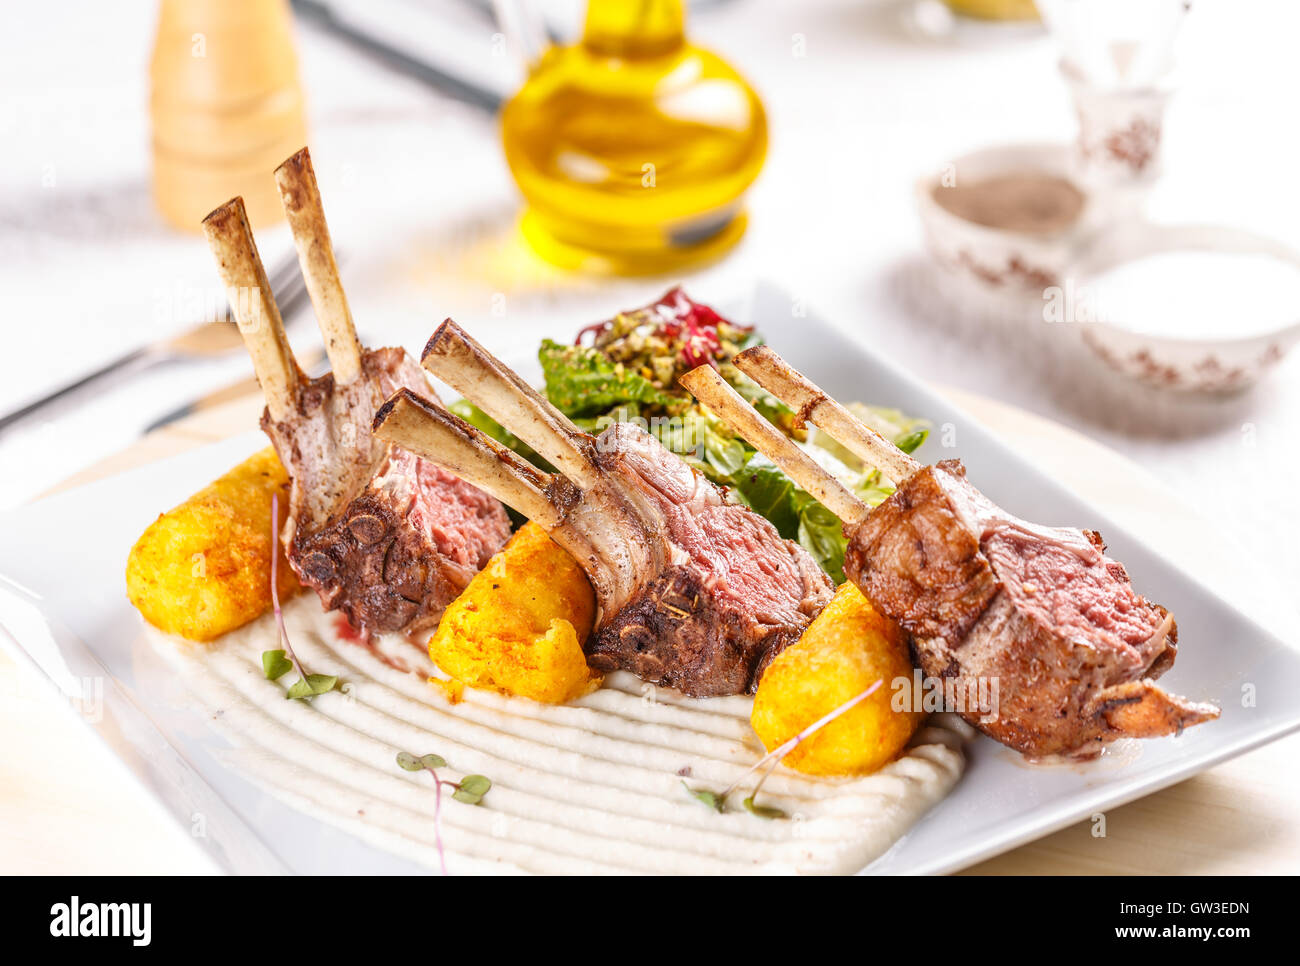 Gourmet main entree course grilled lamb steak Stock Photo